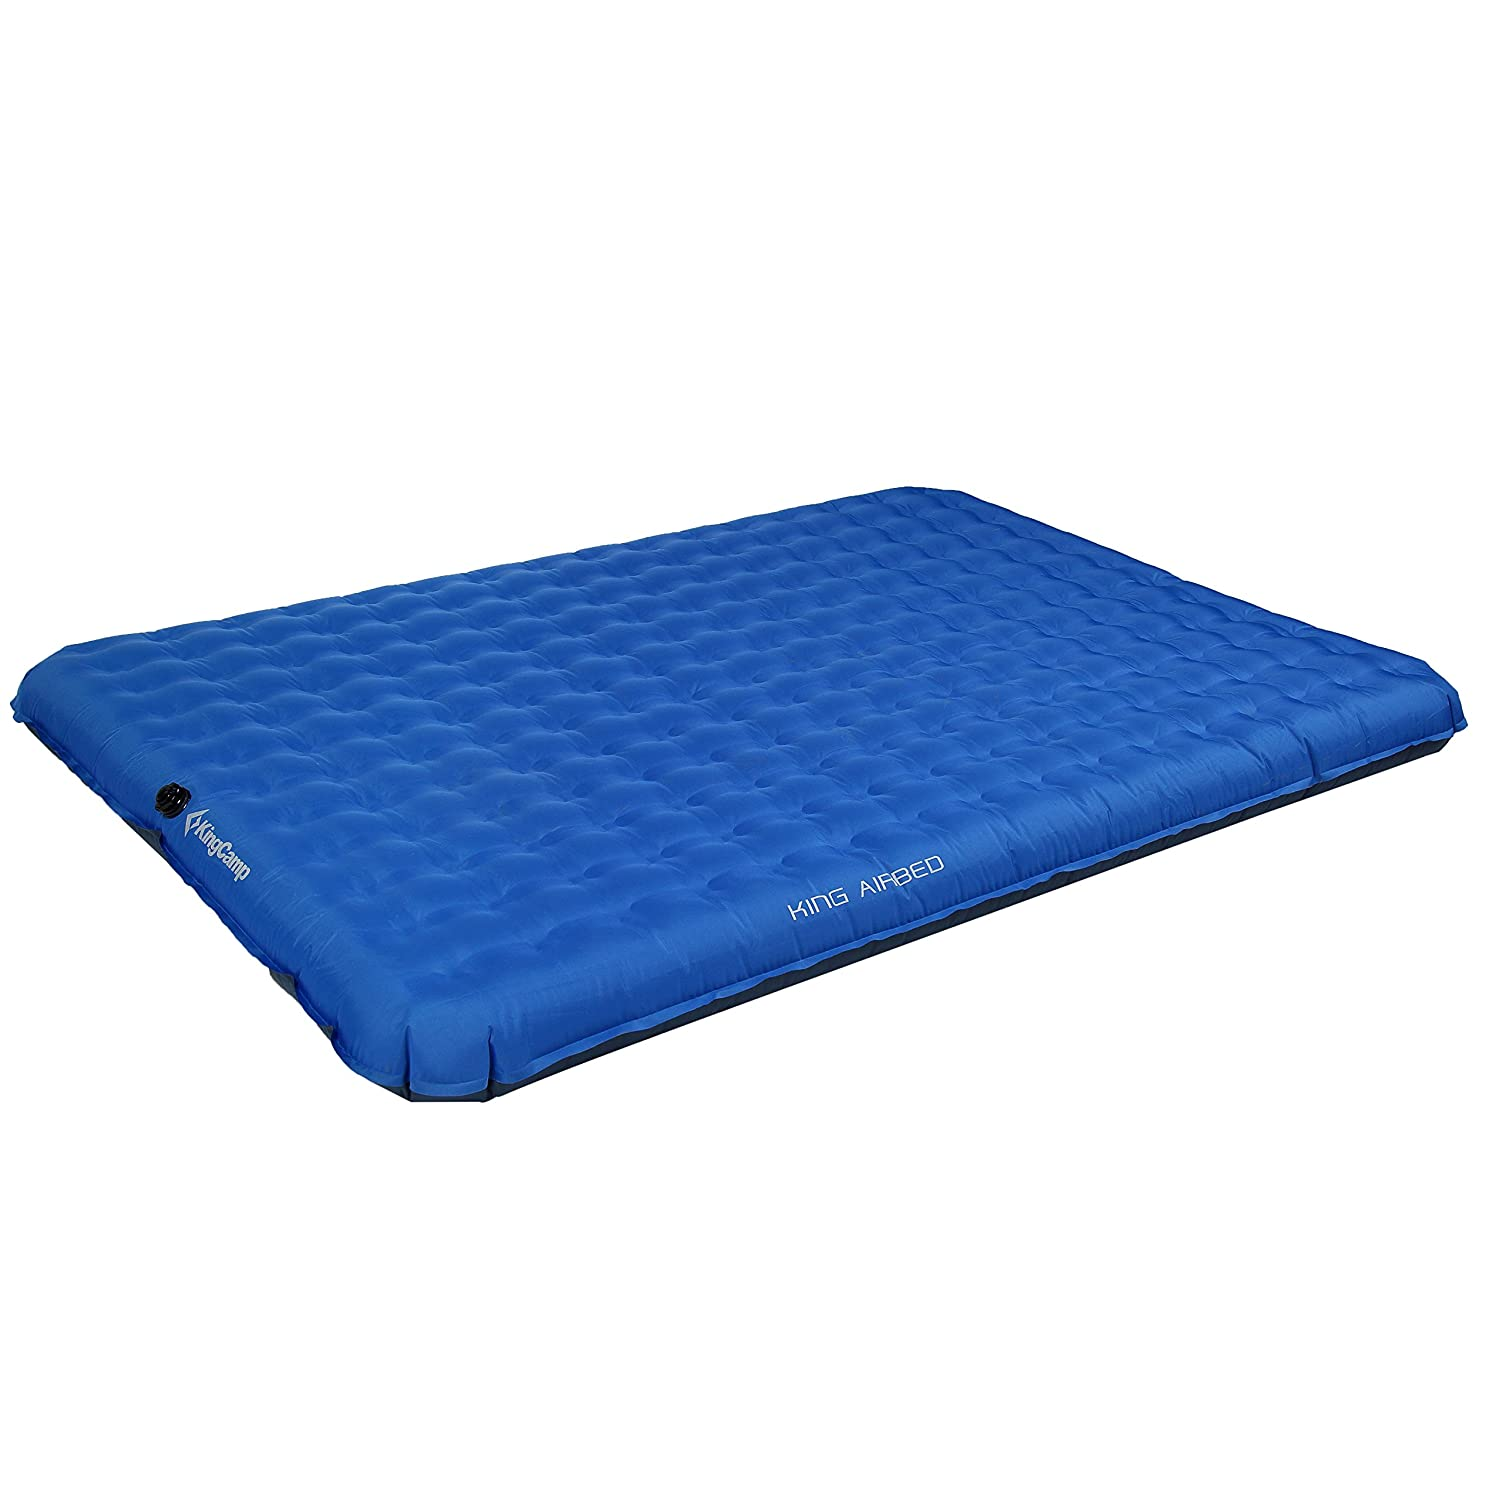 Air bed for camping - Kingcamp 2 Person Pvc Free Ultra Light Camping Airbed With Battery Operated Pump